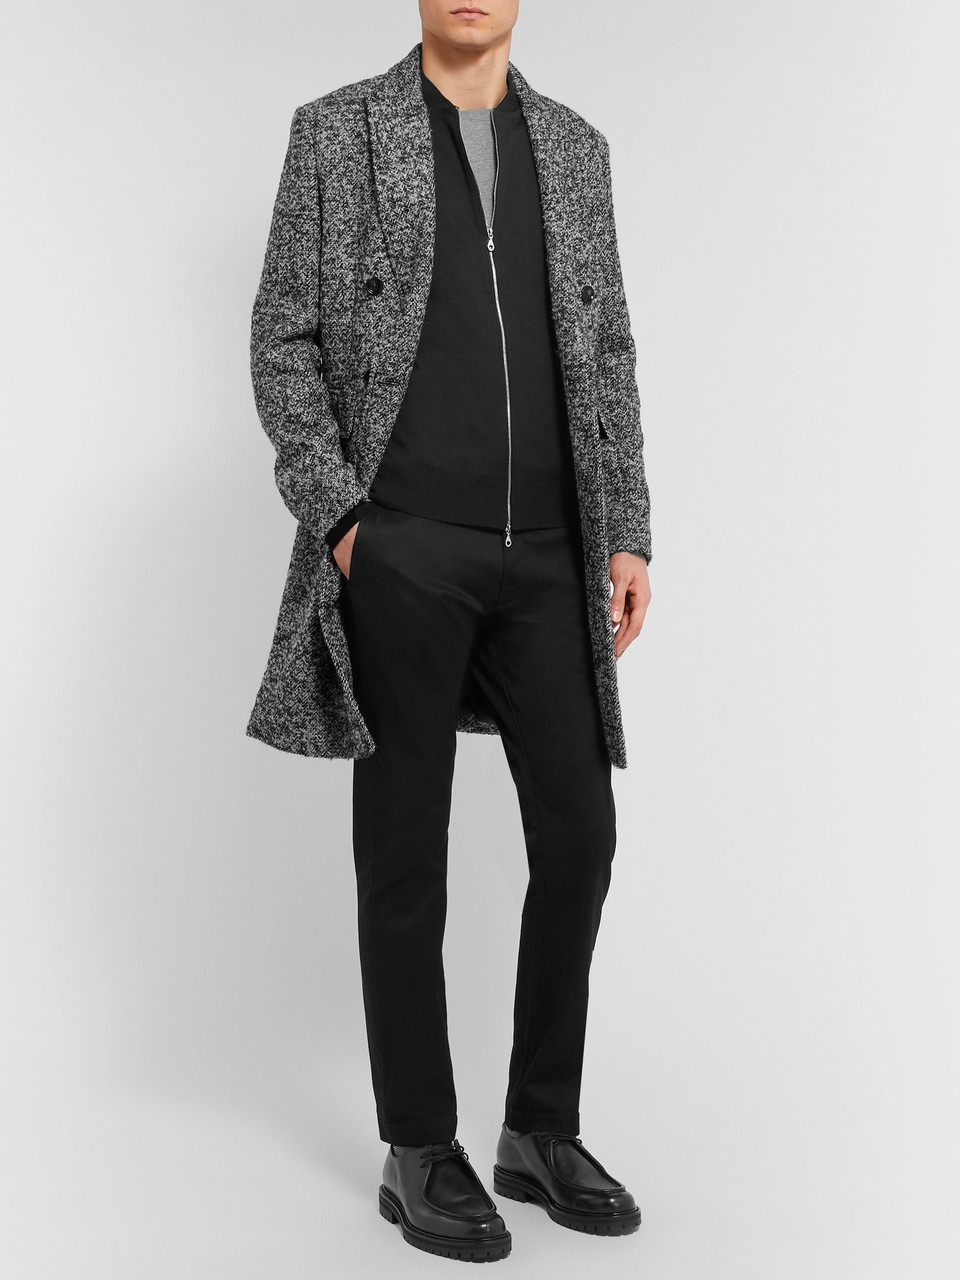 John Smedley Slim-Fit Merino Wool Zip-Up Cardigan